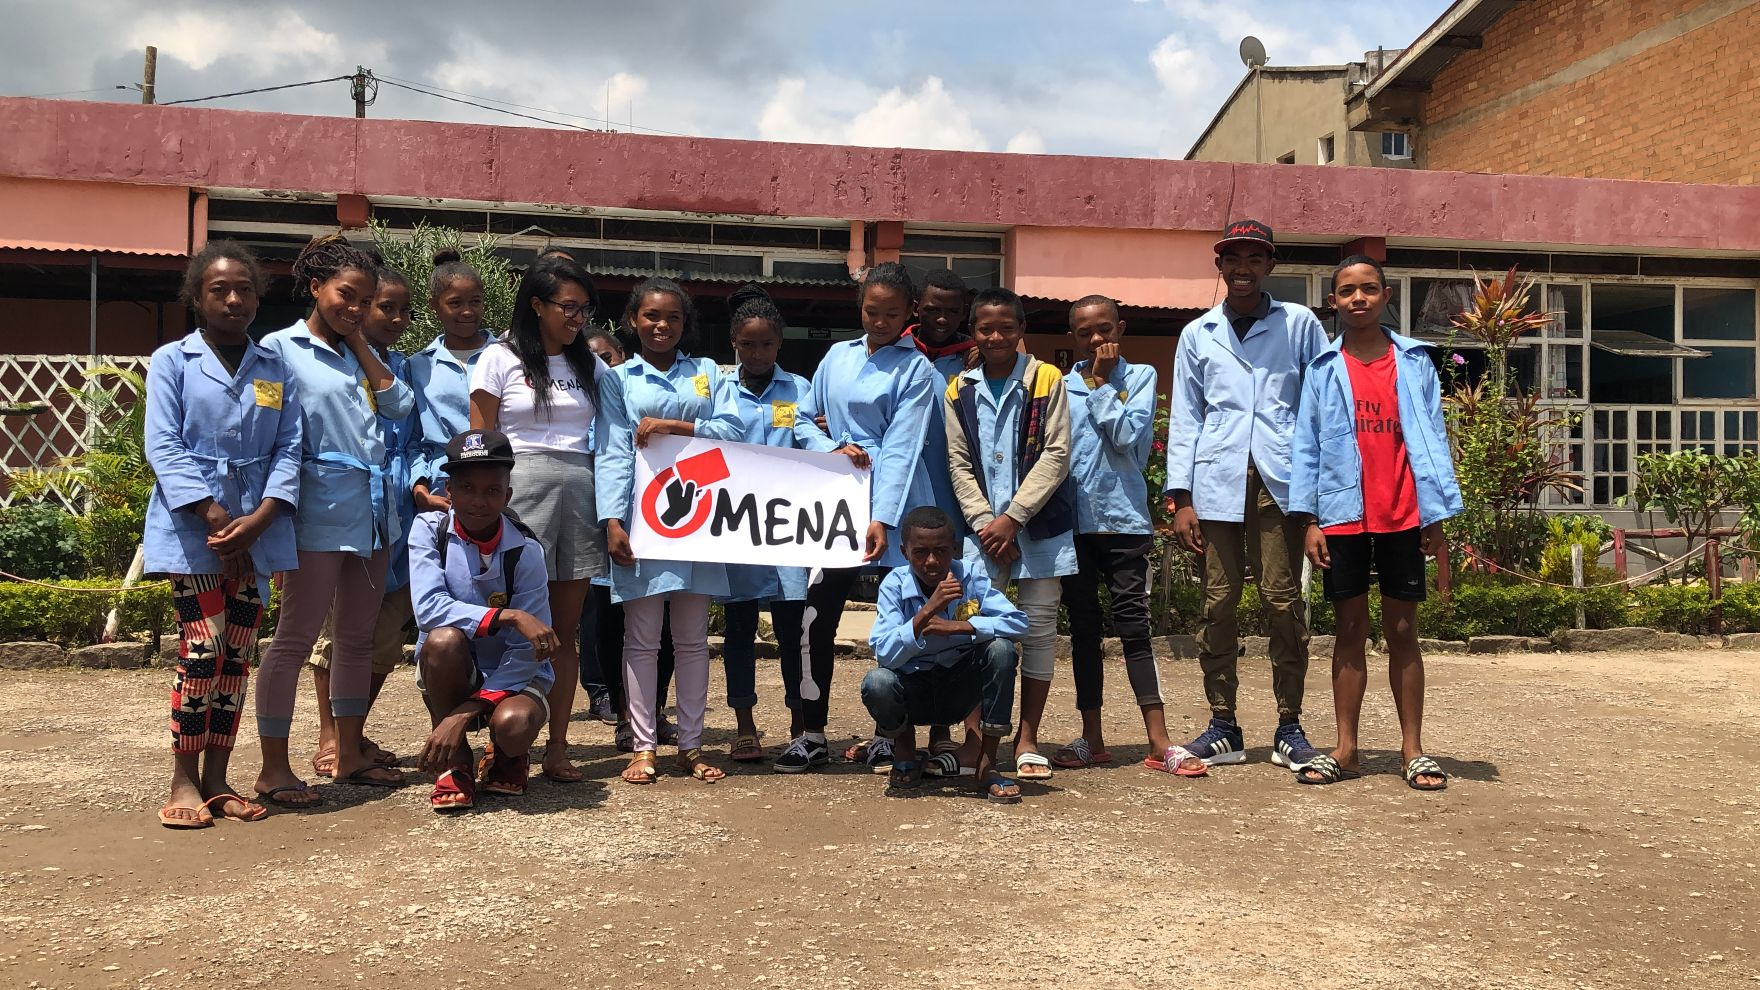 Group of kids with Omena sign